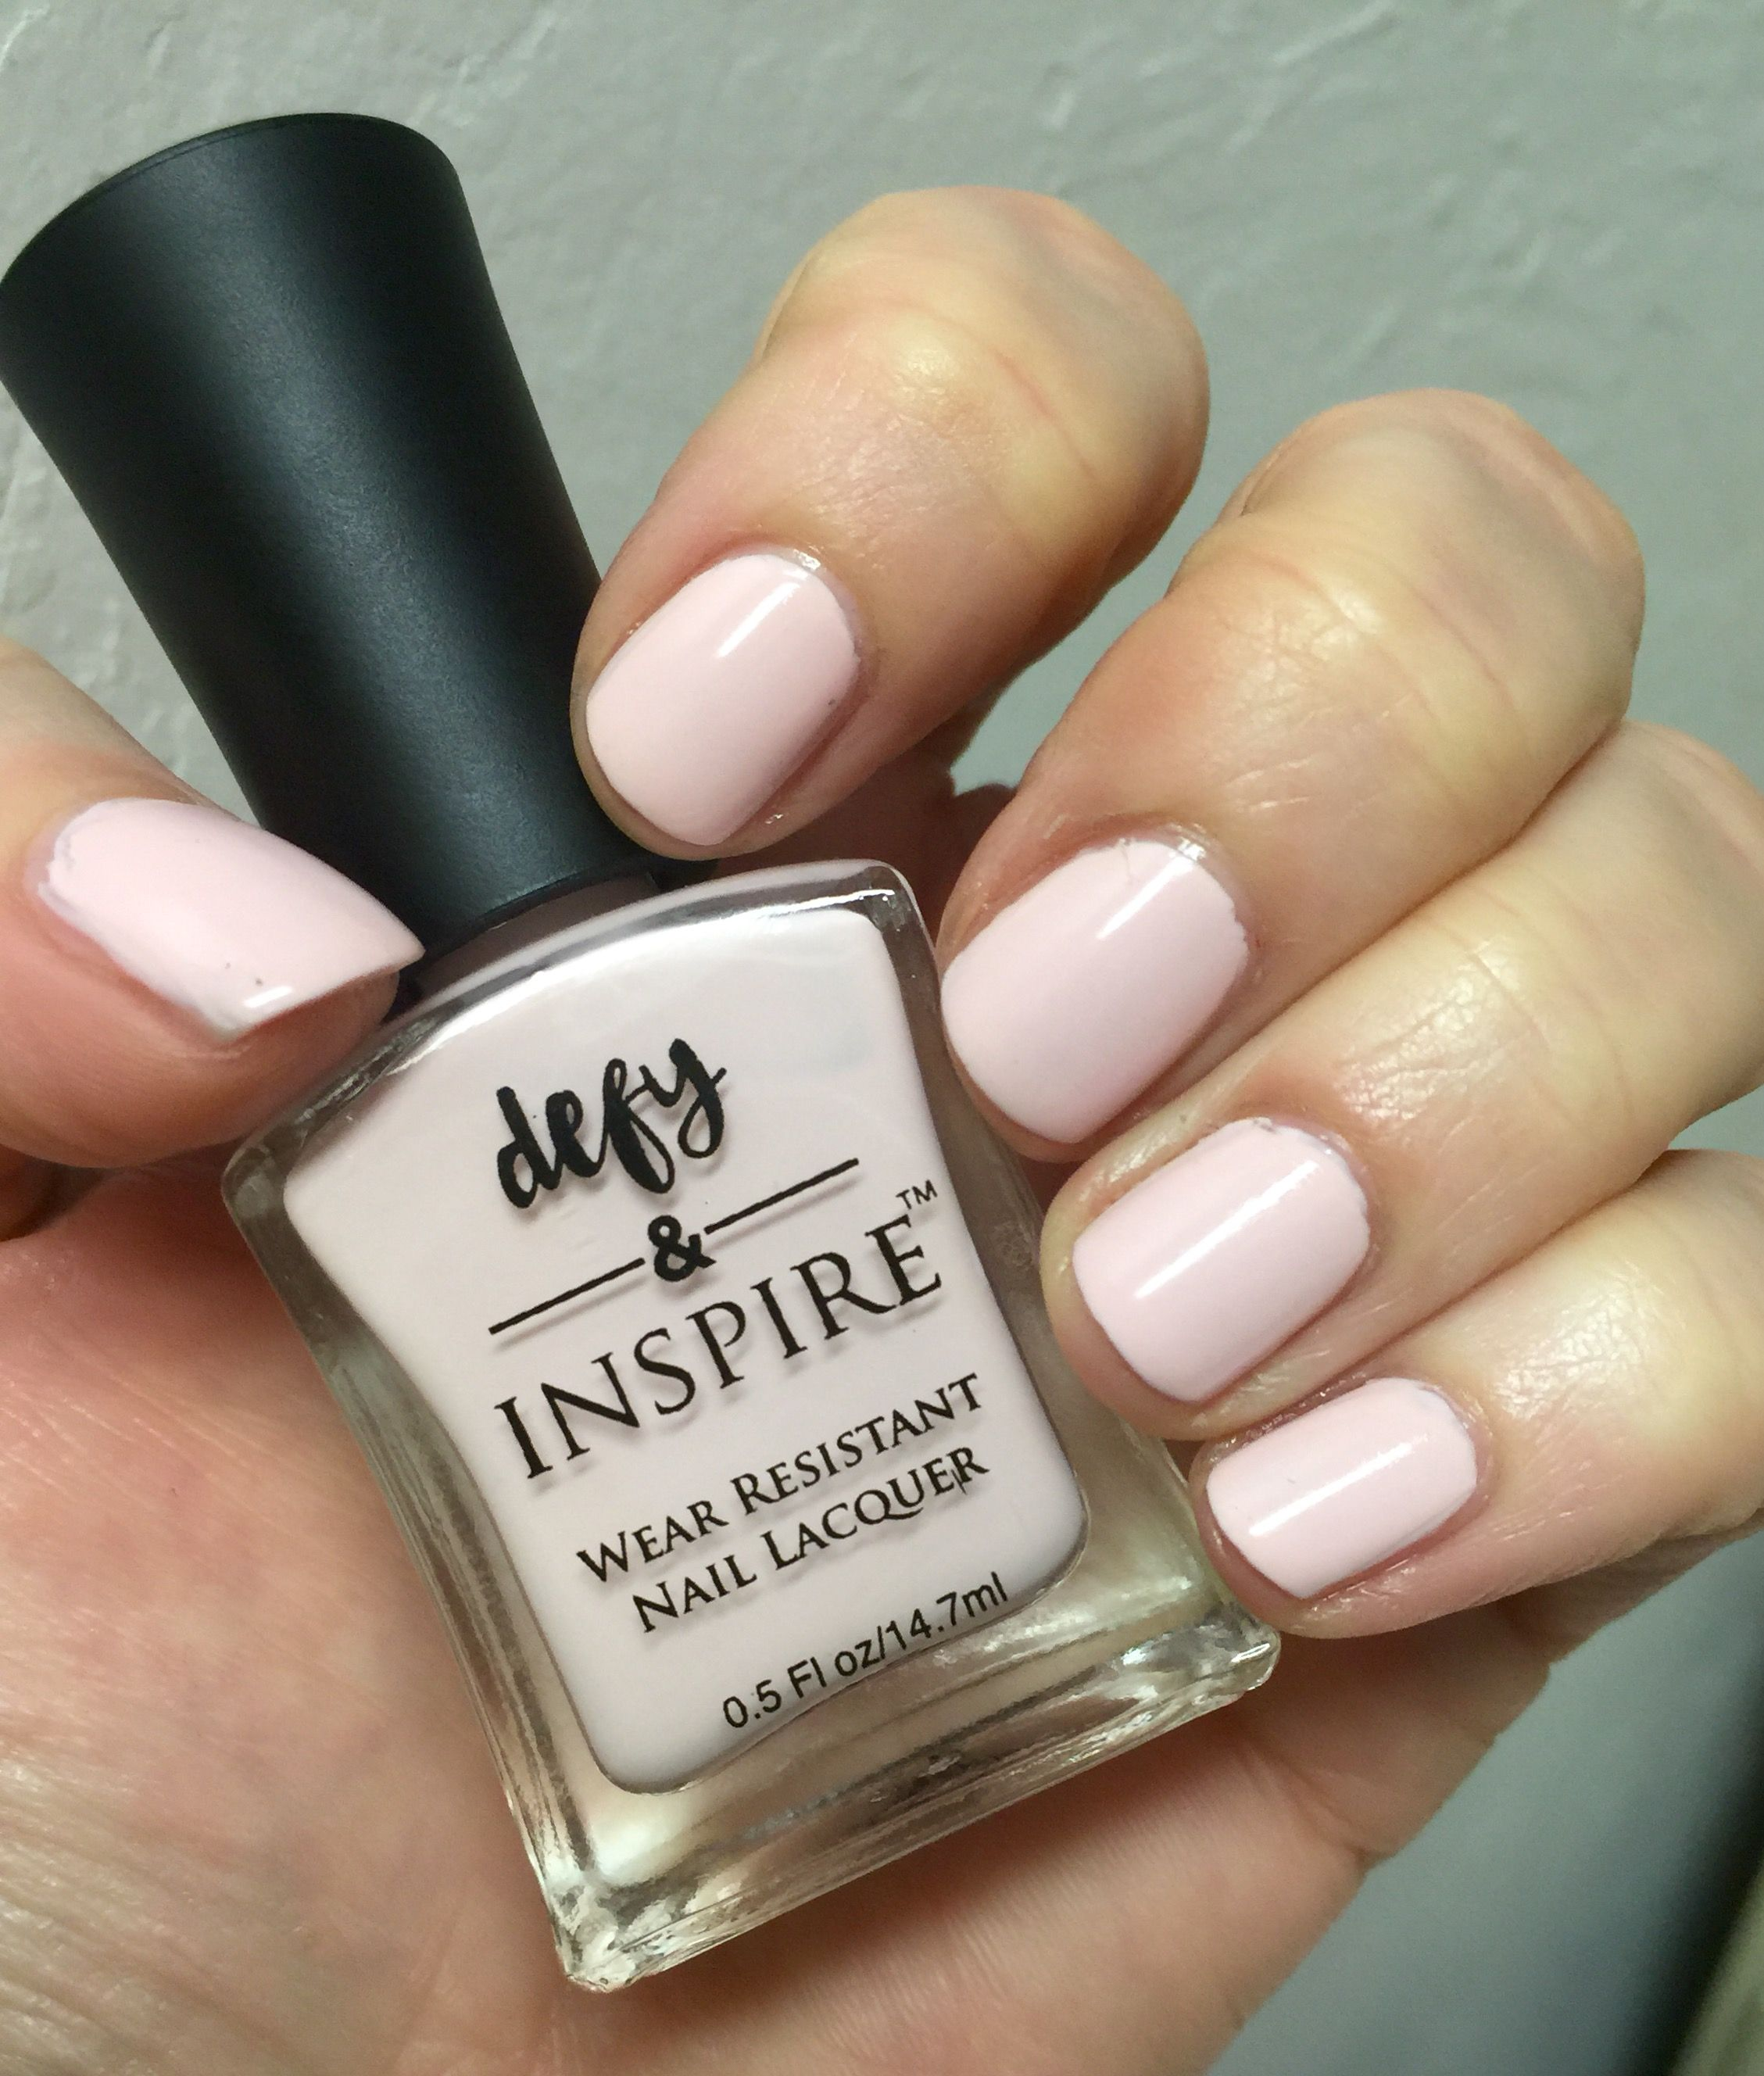 Forum on this topic: Fall Winter 2015-2019 Nail Trends, fall-winter-2015-2019-nail-trends/